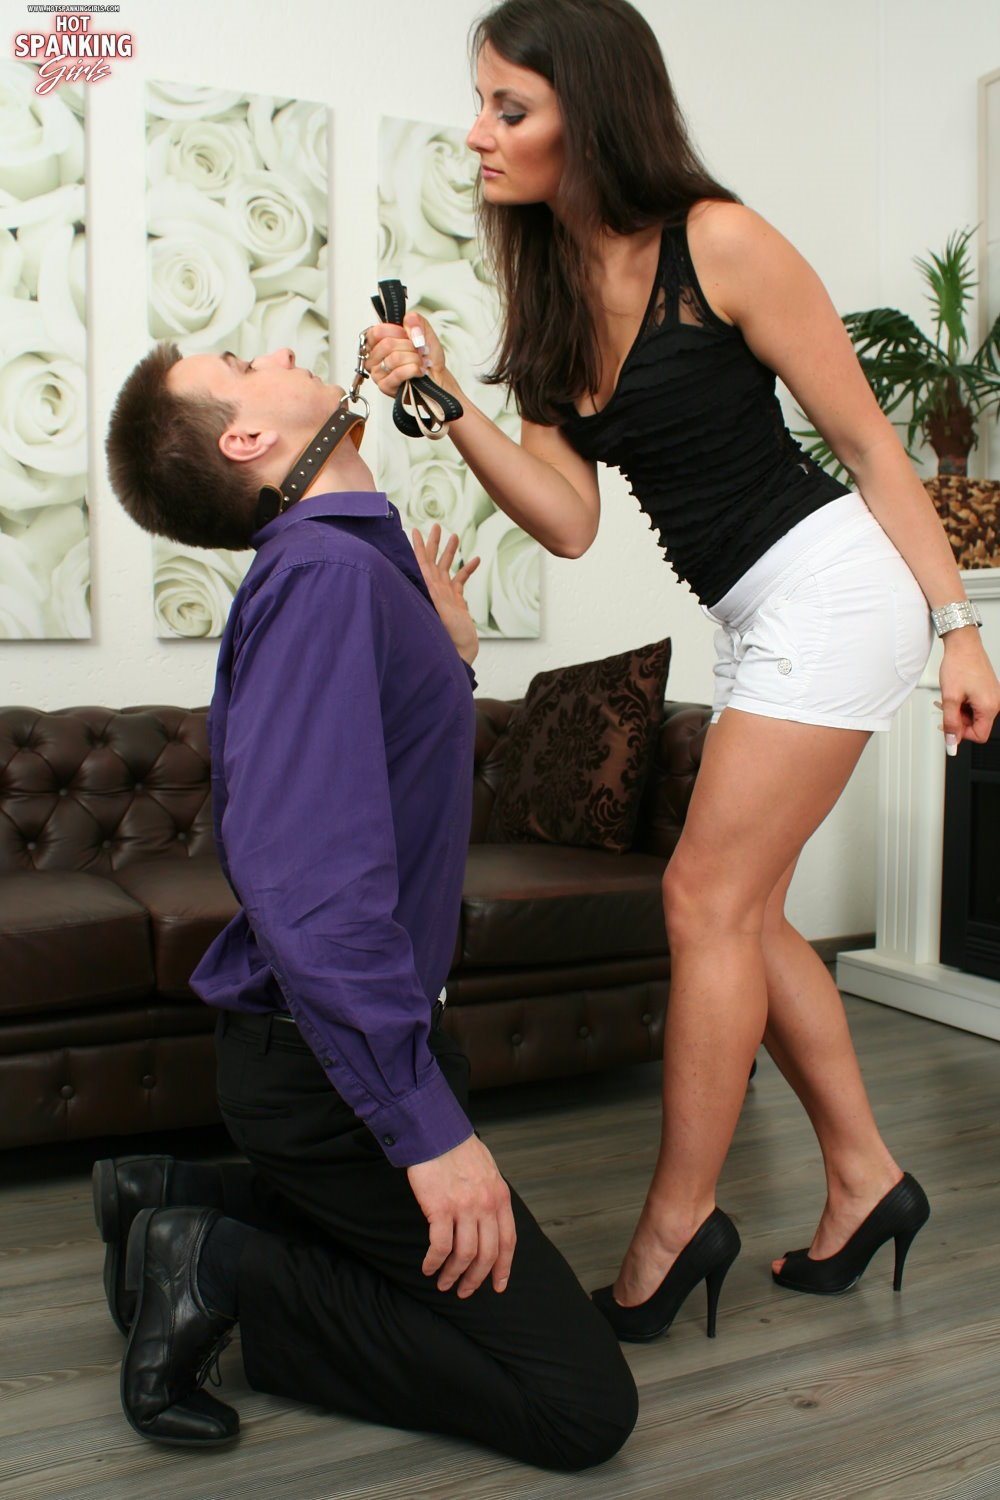 hoejhael:  Maybe when I'm done punishing you, you will learn to listen and obey.